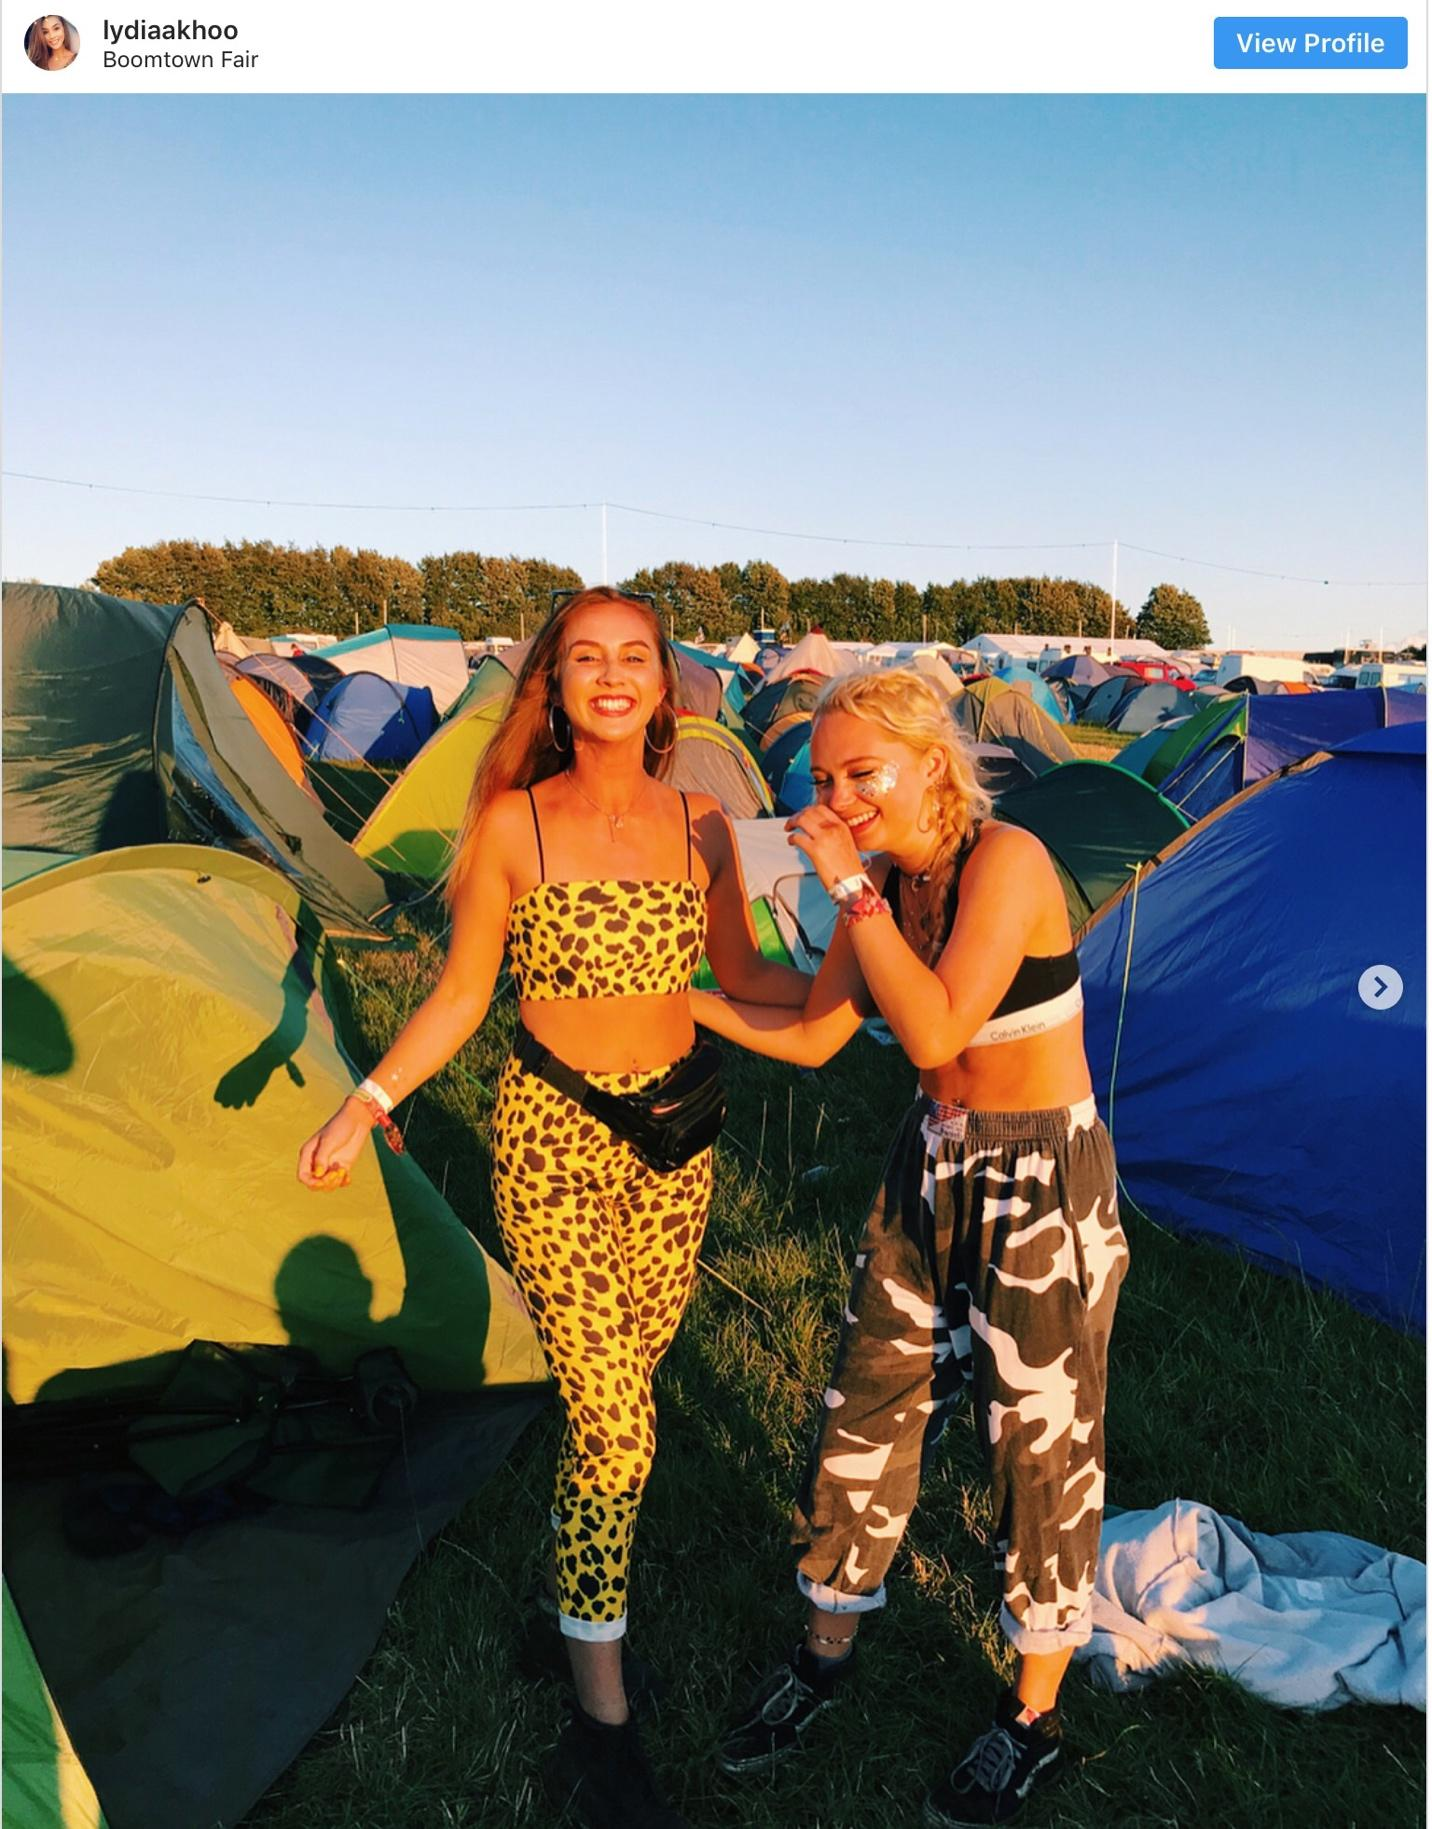 20-craziest-festival-outfits-that-students-rocked-in-summer-2018-4.jpg